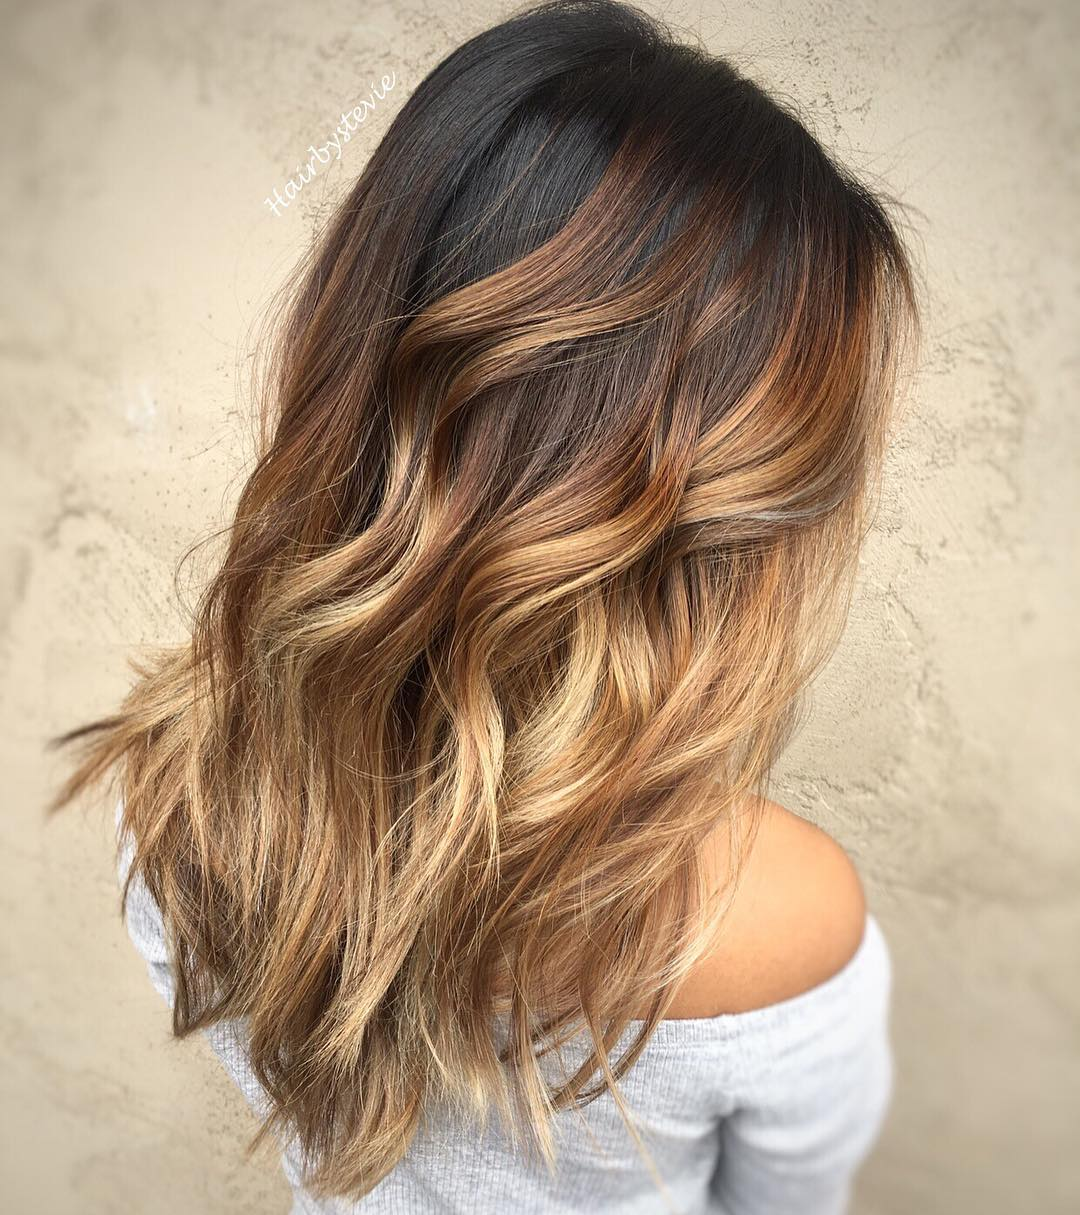 20 sweet caramel balayage hairstyles for brunettes and beyond. Black Bedroom Furniture Sets. Home Design Ideas